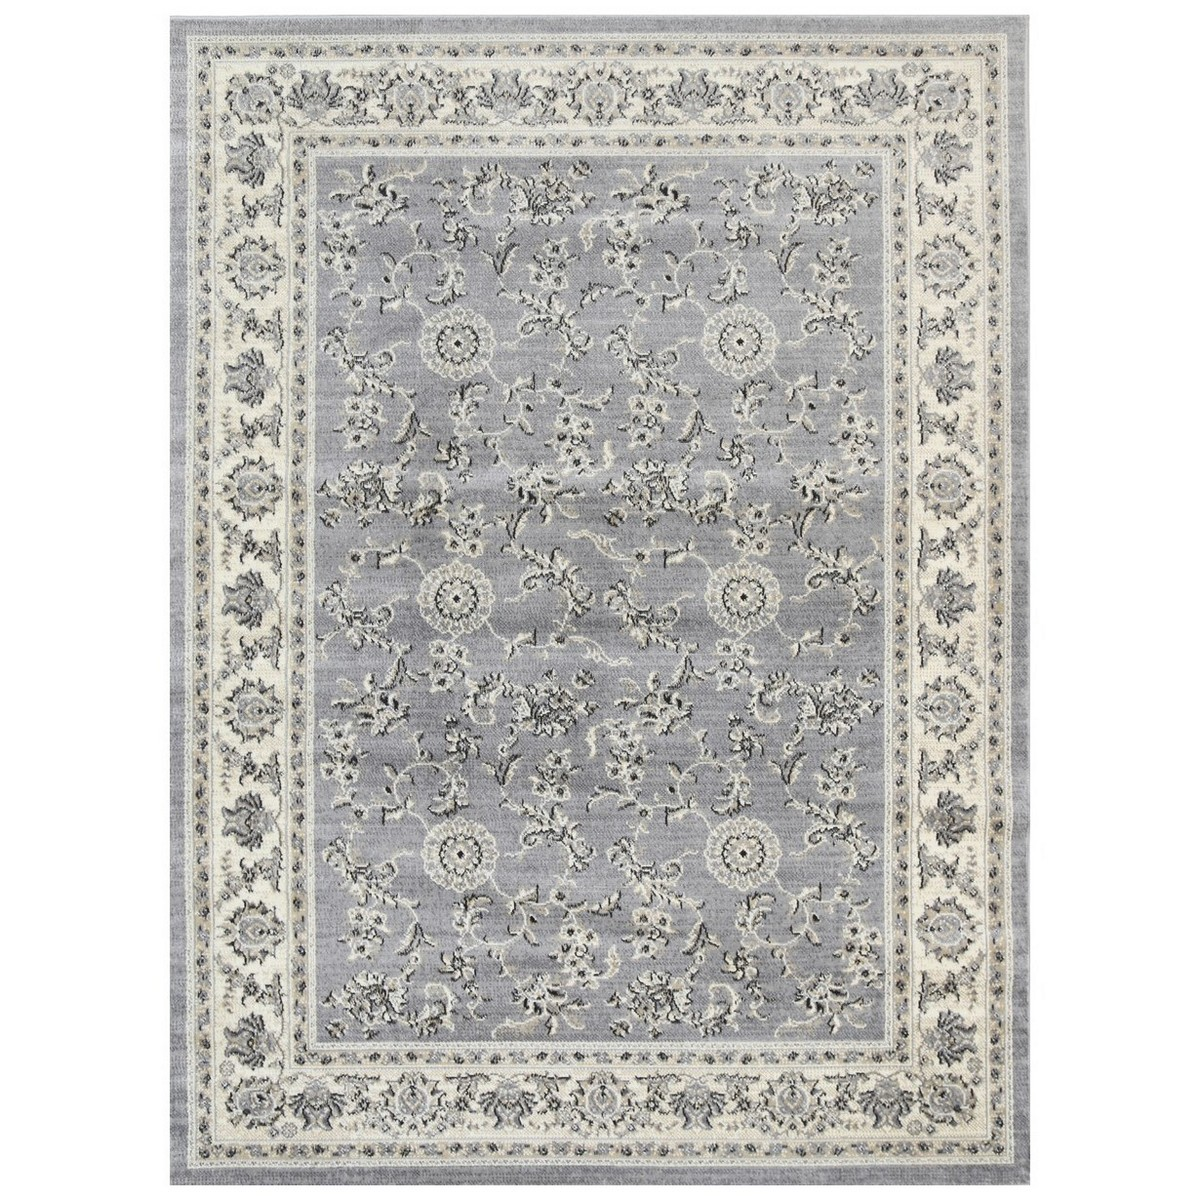 Old World Avalie Oriental Rug, 160x220cm